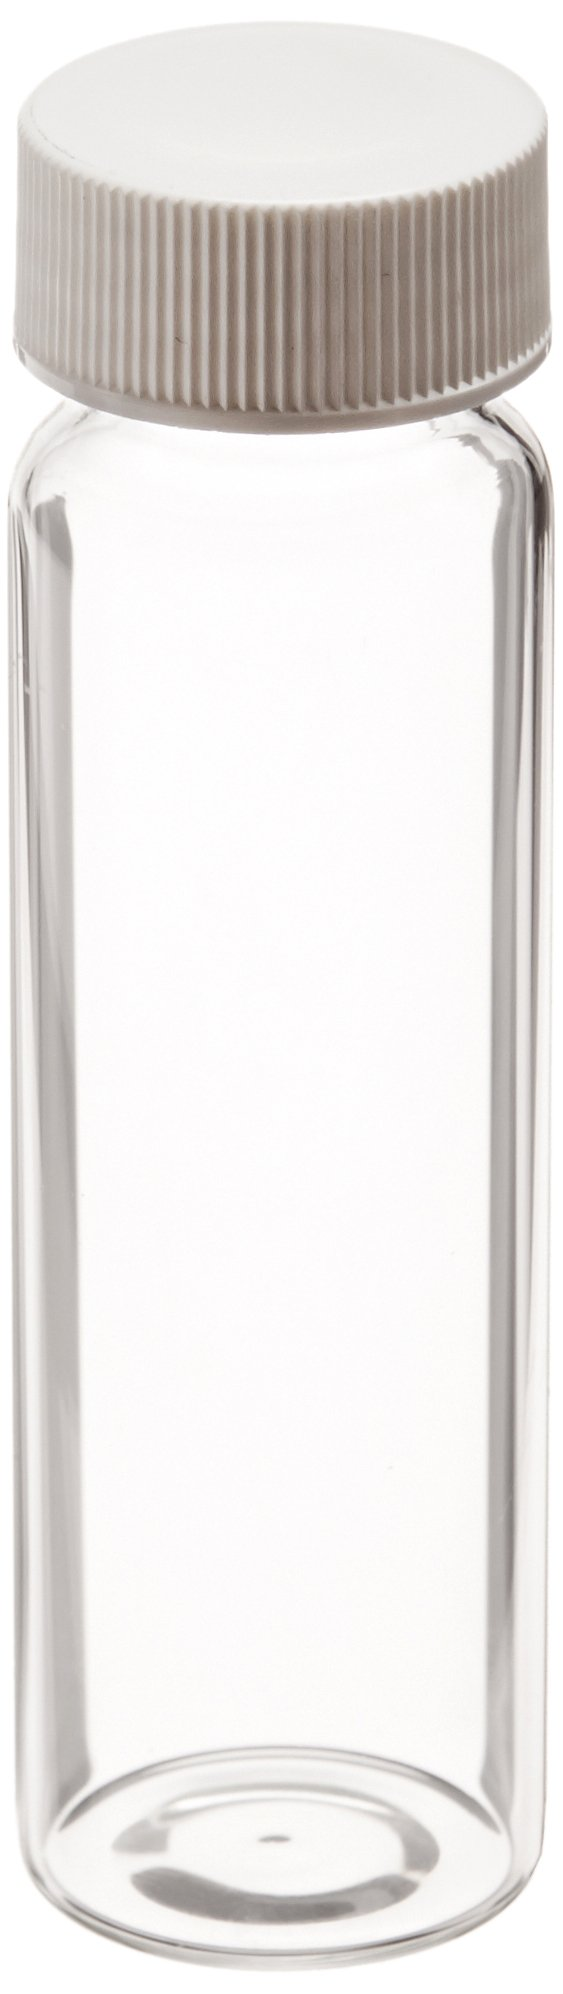 Thomas Scientific 9-120 Clear Borosilicate Glass Standard VOA Vial with White Polypropylene Solid Top Closure and PTFE Lined, 24-400mm Cap Size, 40mL Capacity (Pack of 72)